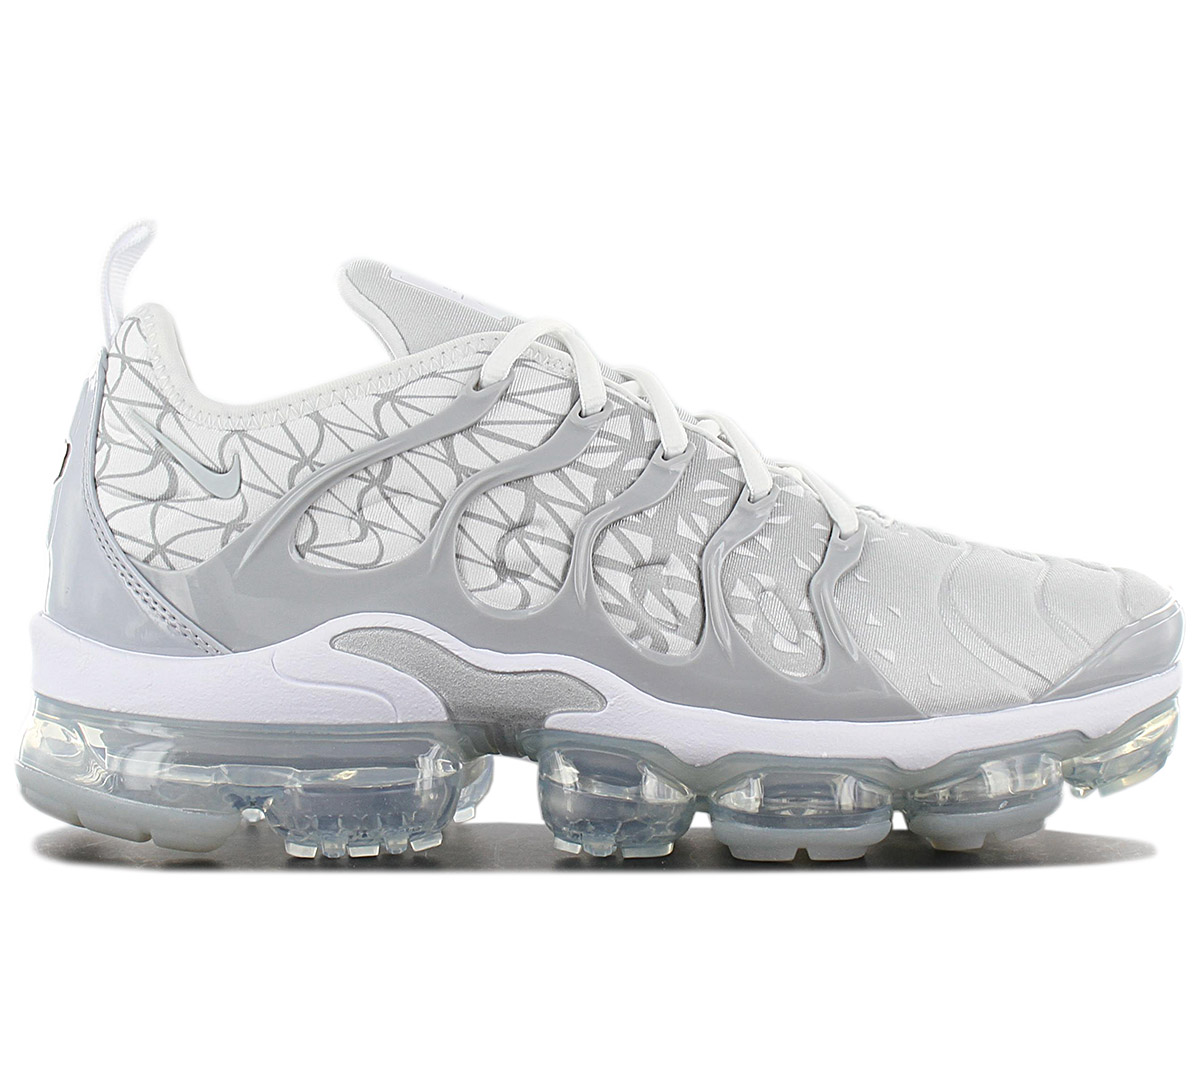 hot sale online 789d7 edf8c Details about Nike Air Vapormax plus TN Men's Sneakers 924453-106 White  Silver Shoes Trainers